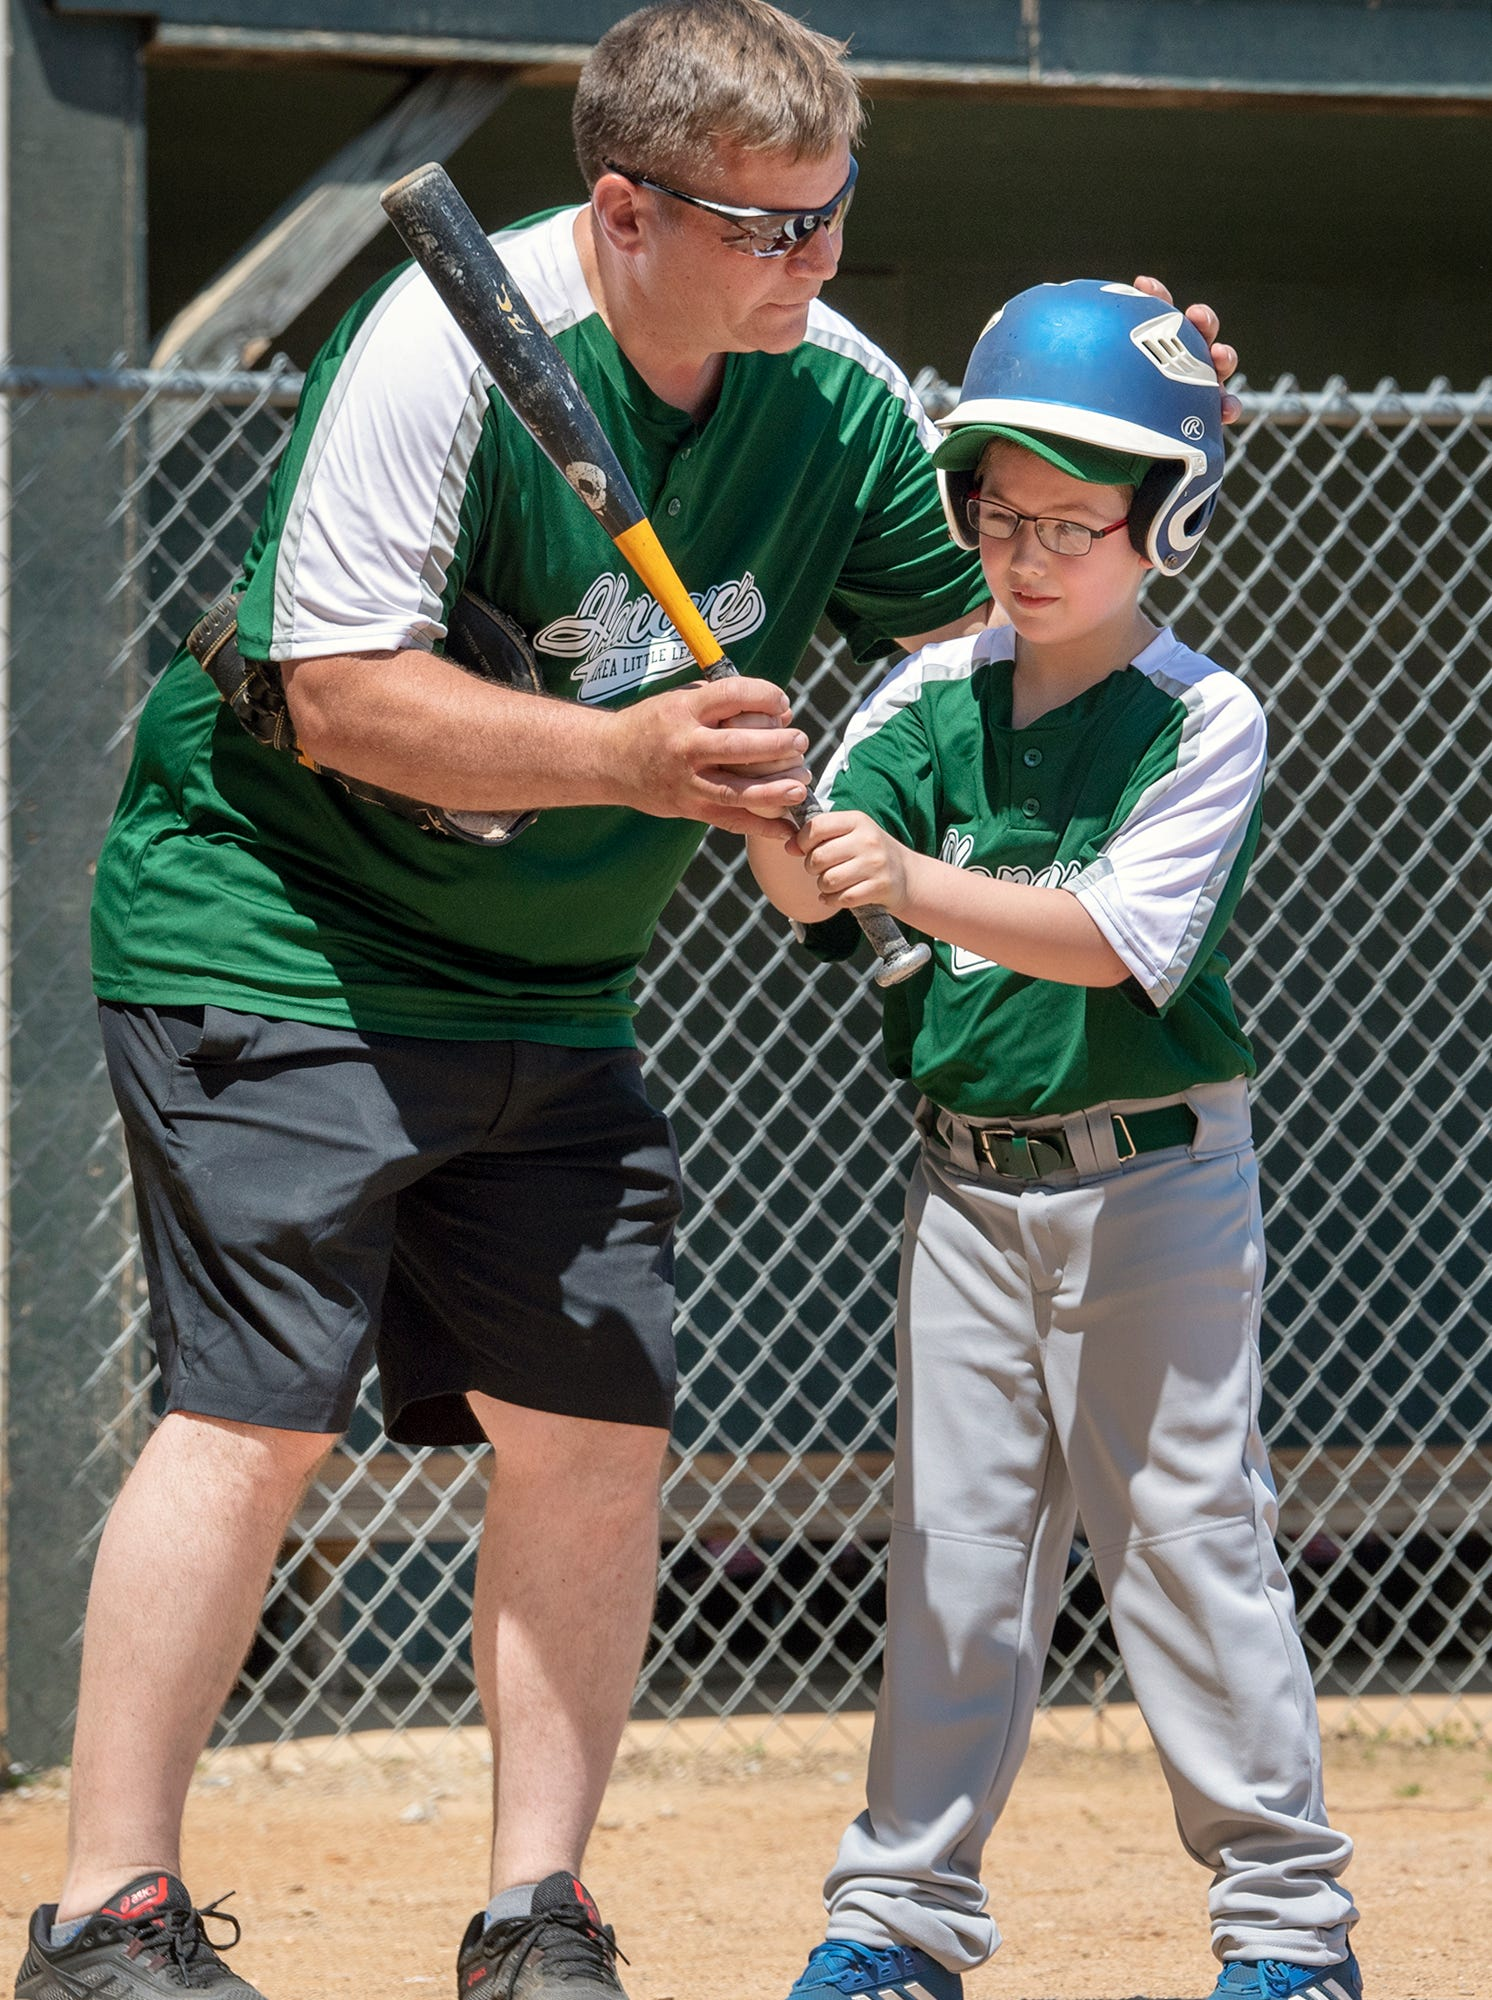 Hanover Area Little League debuts division for disabled children